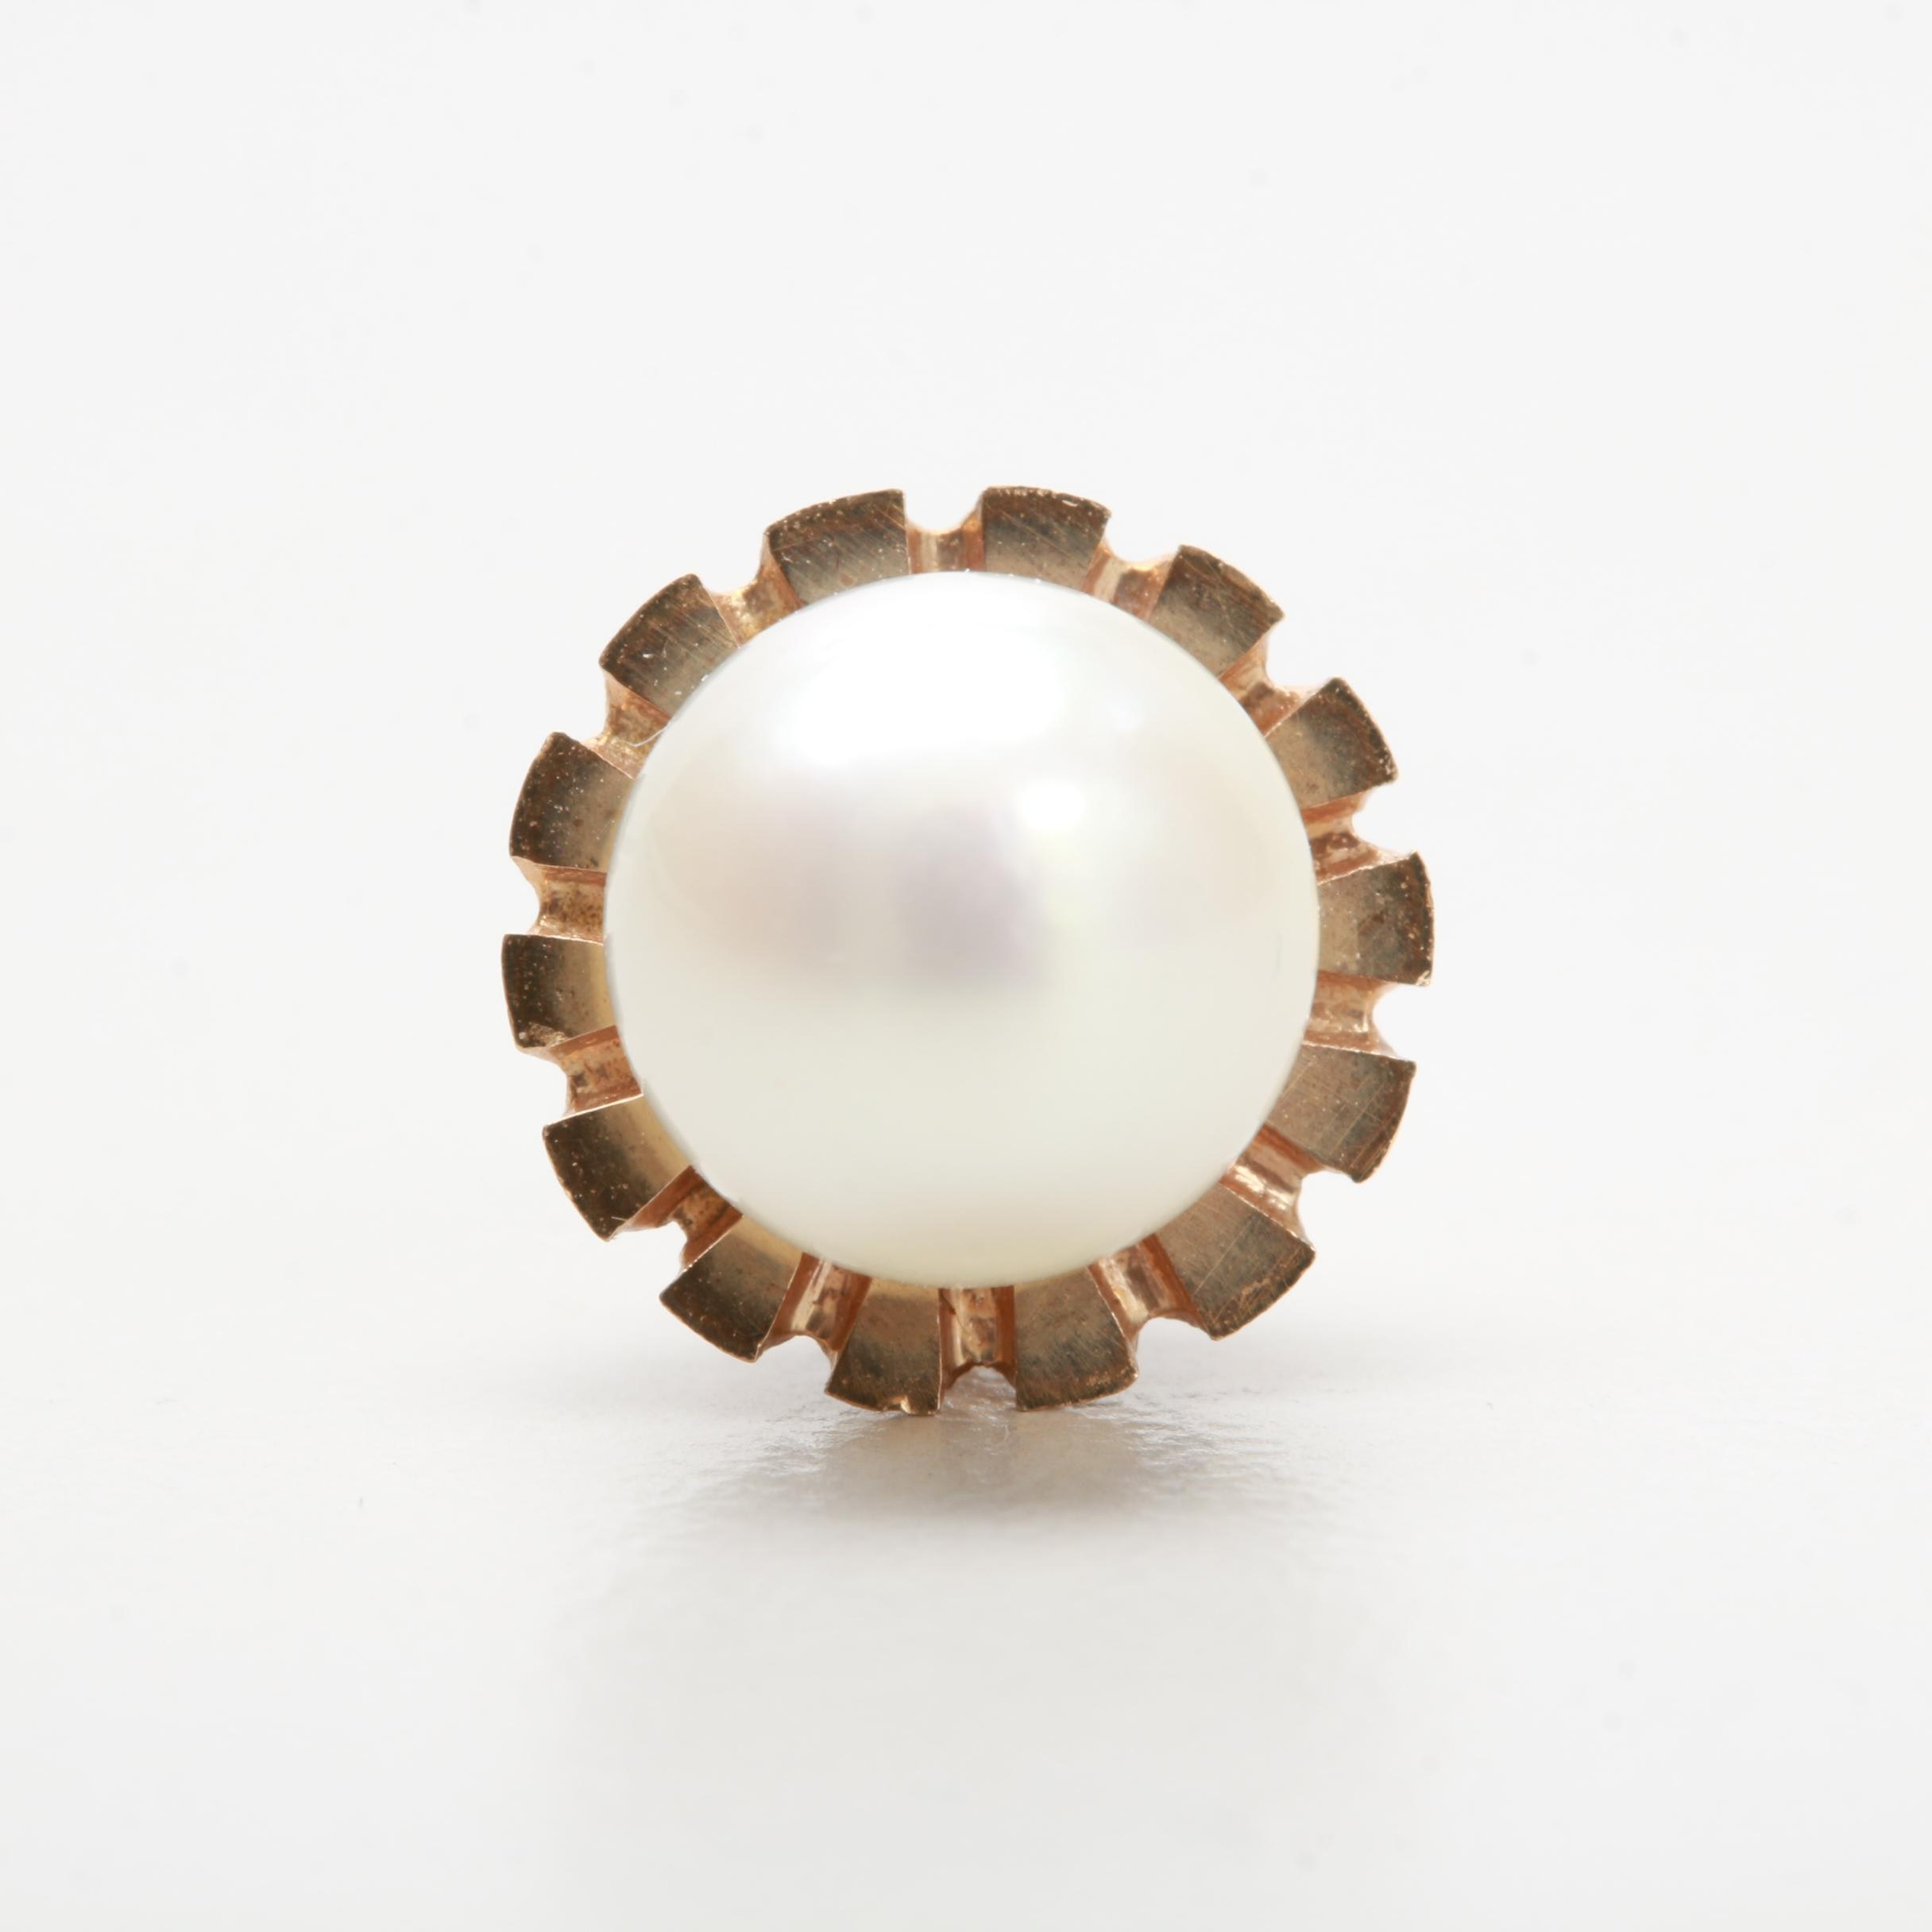 14K Yellow Gold Cultured Pearl Tie Tack